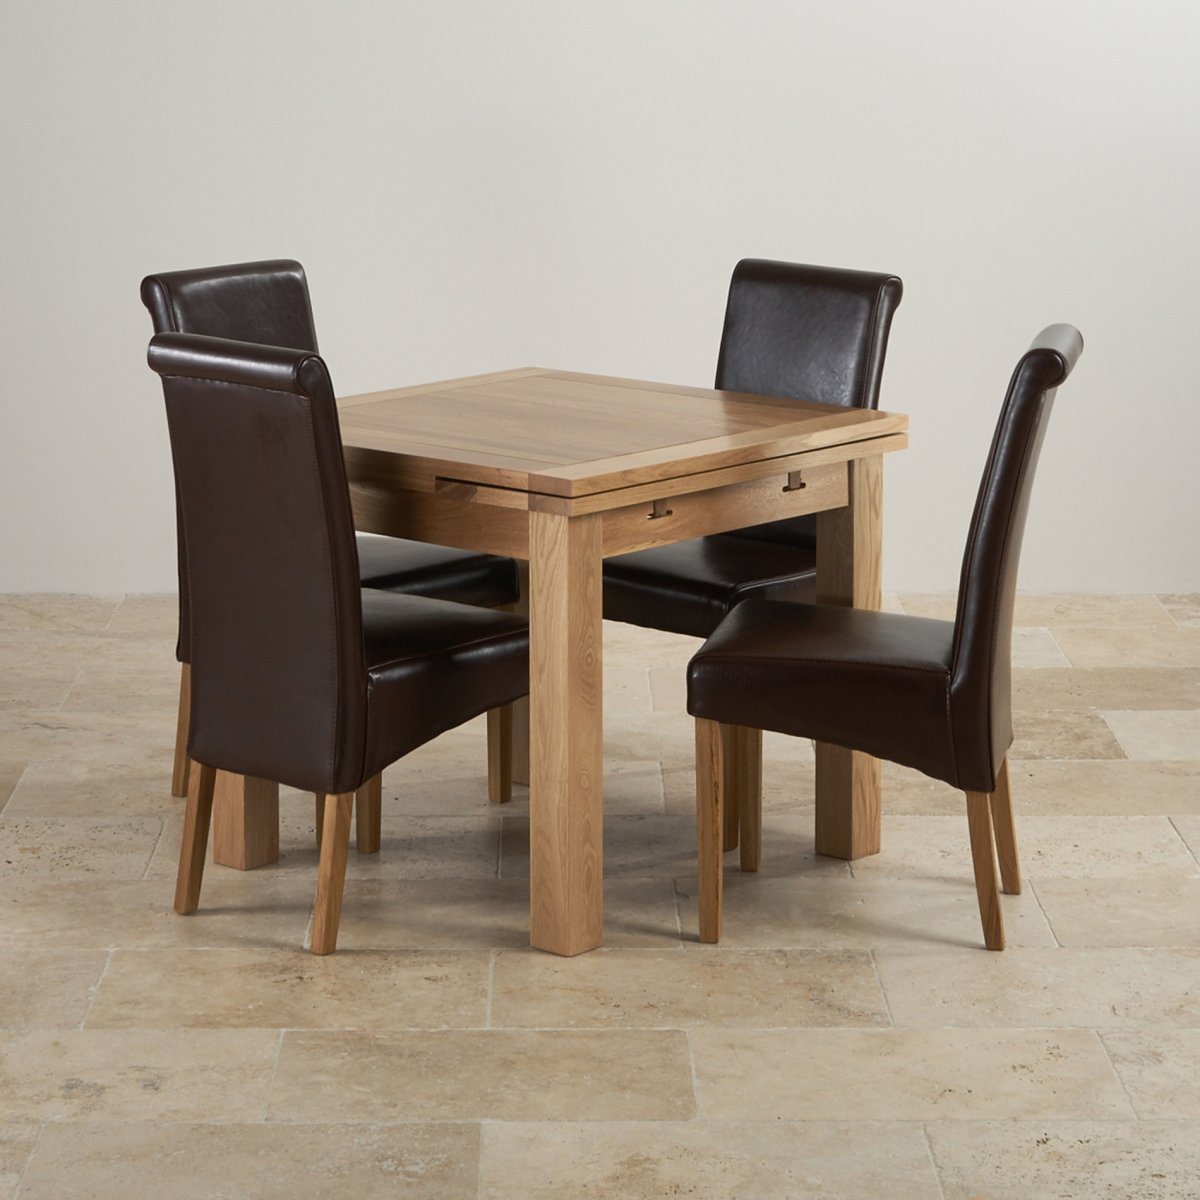 Leather Dining Set: 3ft Table With 4 Brown Chairs